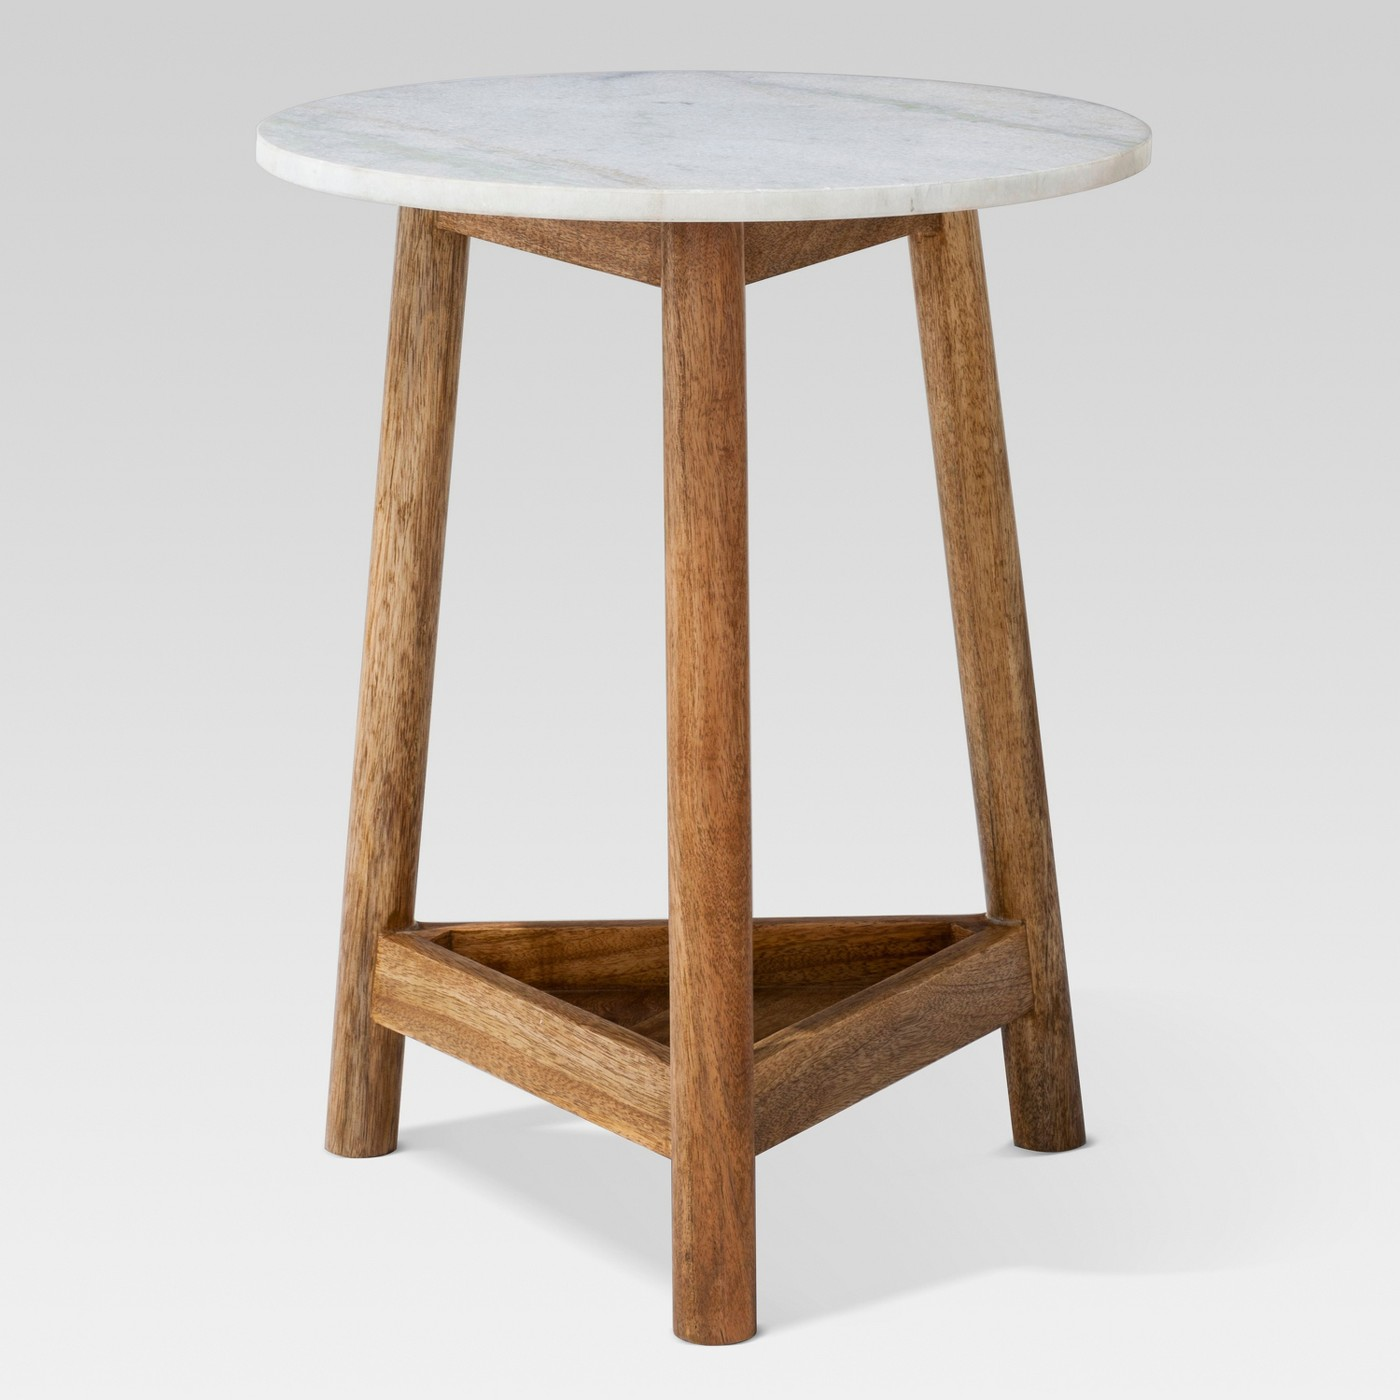 M  arble Side Tables from Target  - $99